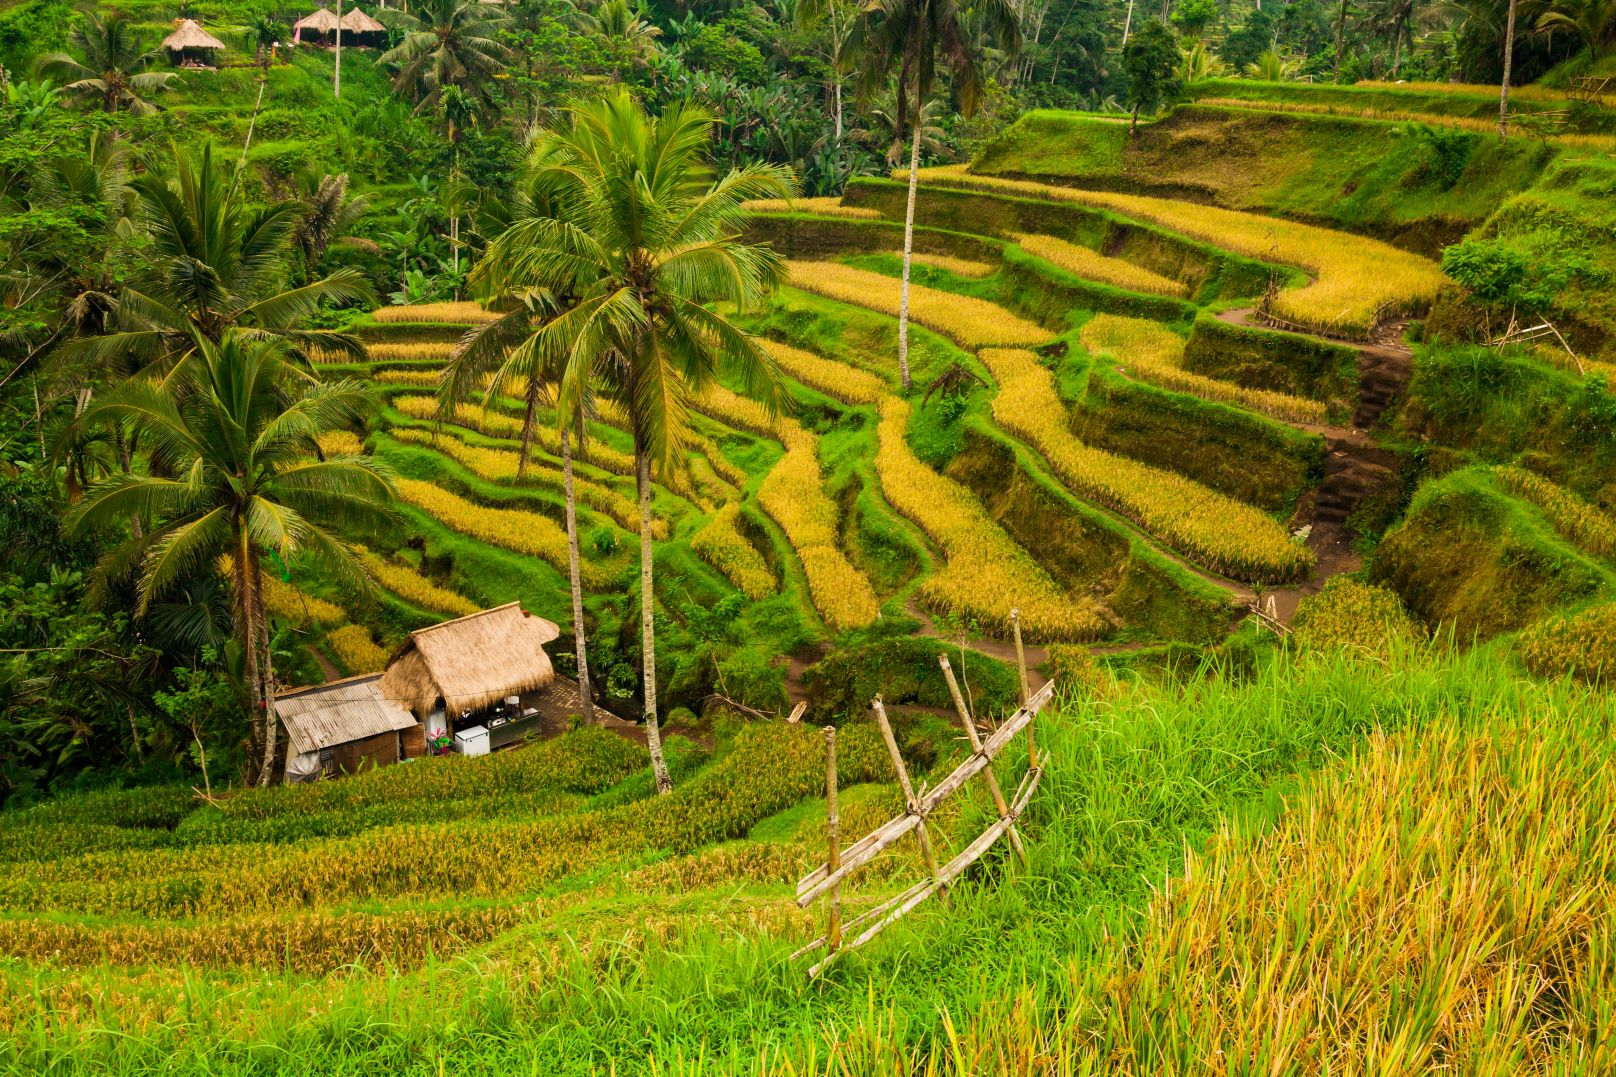 Rice fields, Bali, Ubud, Holiday with the kids, getaway, travel, suitcases, Indonesia, island life, beach, surfing, Seminyak, Canggu,Canggu, beachclub, hotel, relax, family, enjoy Bali, Bali with kids, What to do in Bali with kids, family holiday Bali